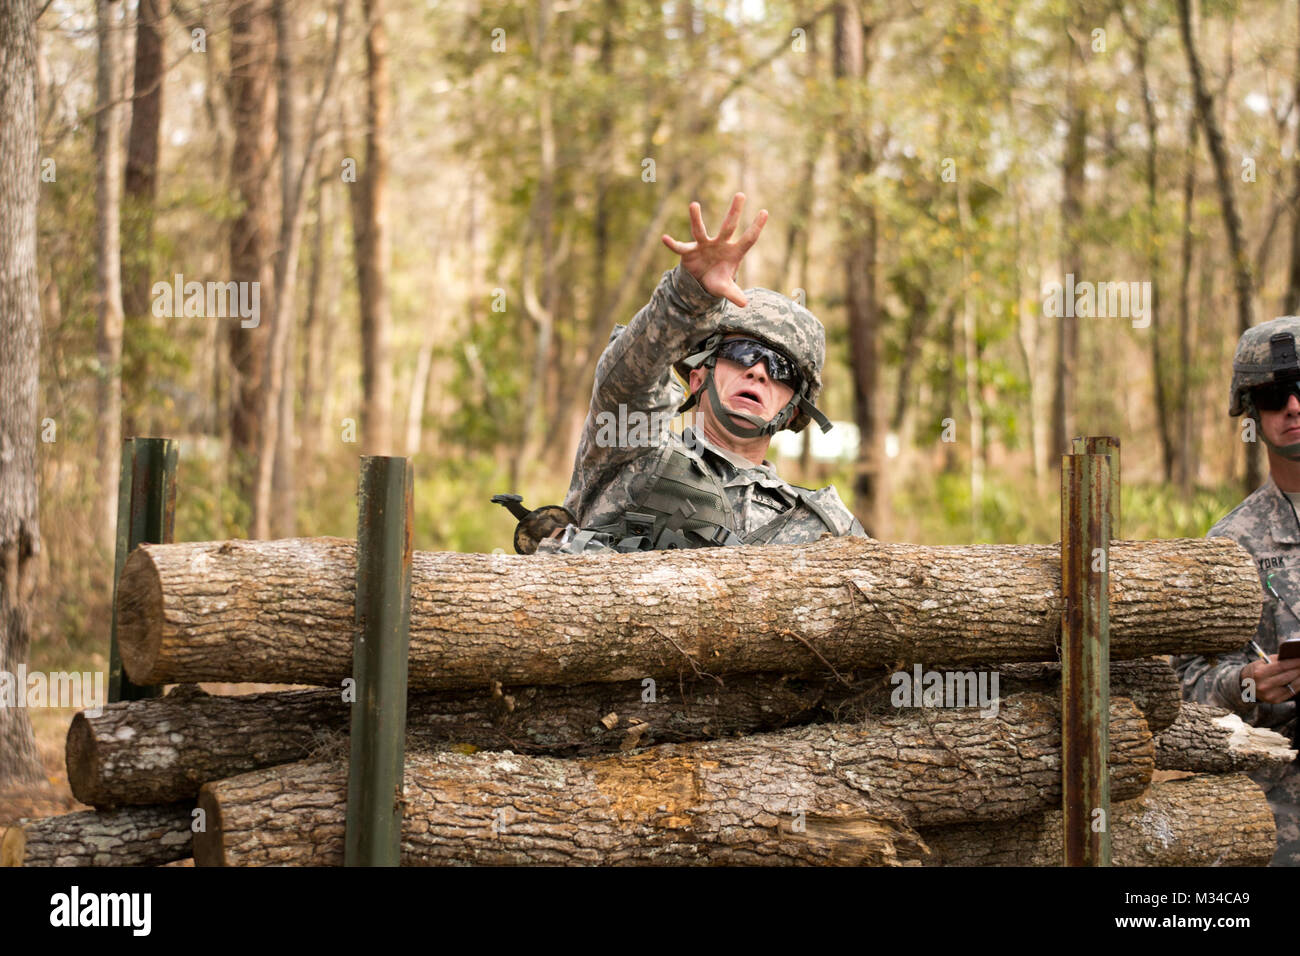 Face off – (GEORGIA GARRISON TRAINING CENTER, Ft. Stewart, Ga. 5 Mar. 2015) - Spc. Caleb DeLong lobs a grenade as part of his defensive movement under direct fire during the Georgia Army National Guard's 2015 Best Warrior Competition.  The competition, held at the Georgia Garrison Training Center at Ft. Stewart, Ga. pits the best military professionals, enlisted and non-commissioned officer, the Georgia Army National Guard has to offer challenging them physically, strategically and written.  (Georgia Department of Defense photo by Staff Sgt. Tracy J. Smith   released) Face off by Georgia Natio Stock Photo